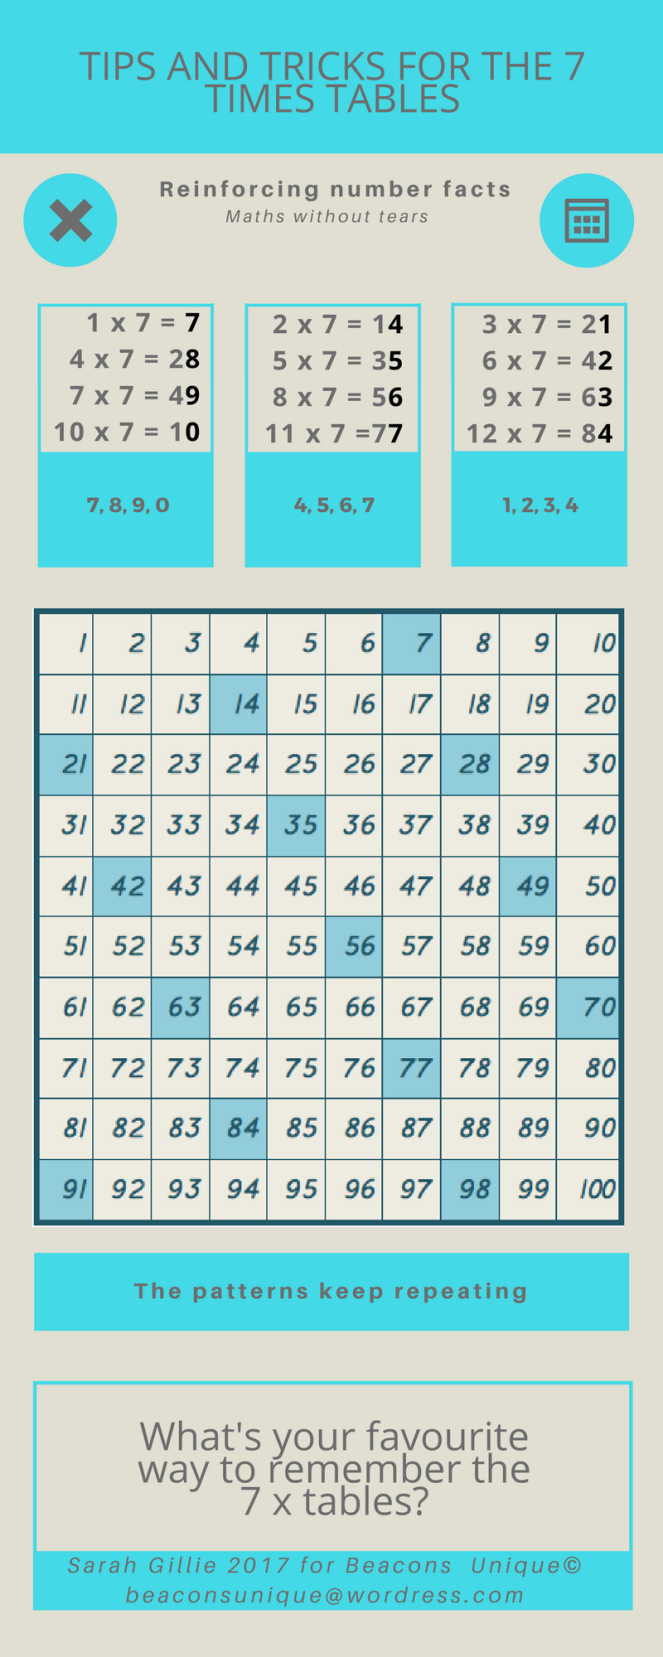 7 times table tricks